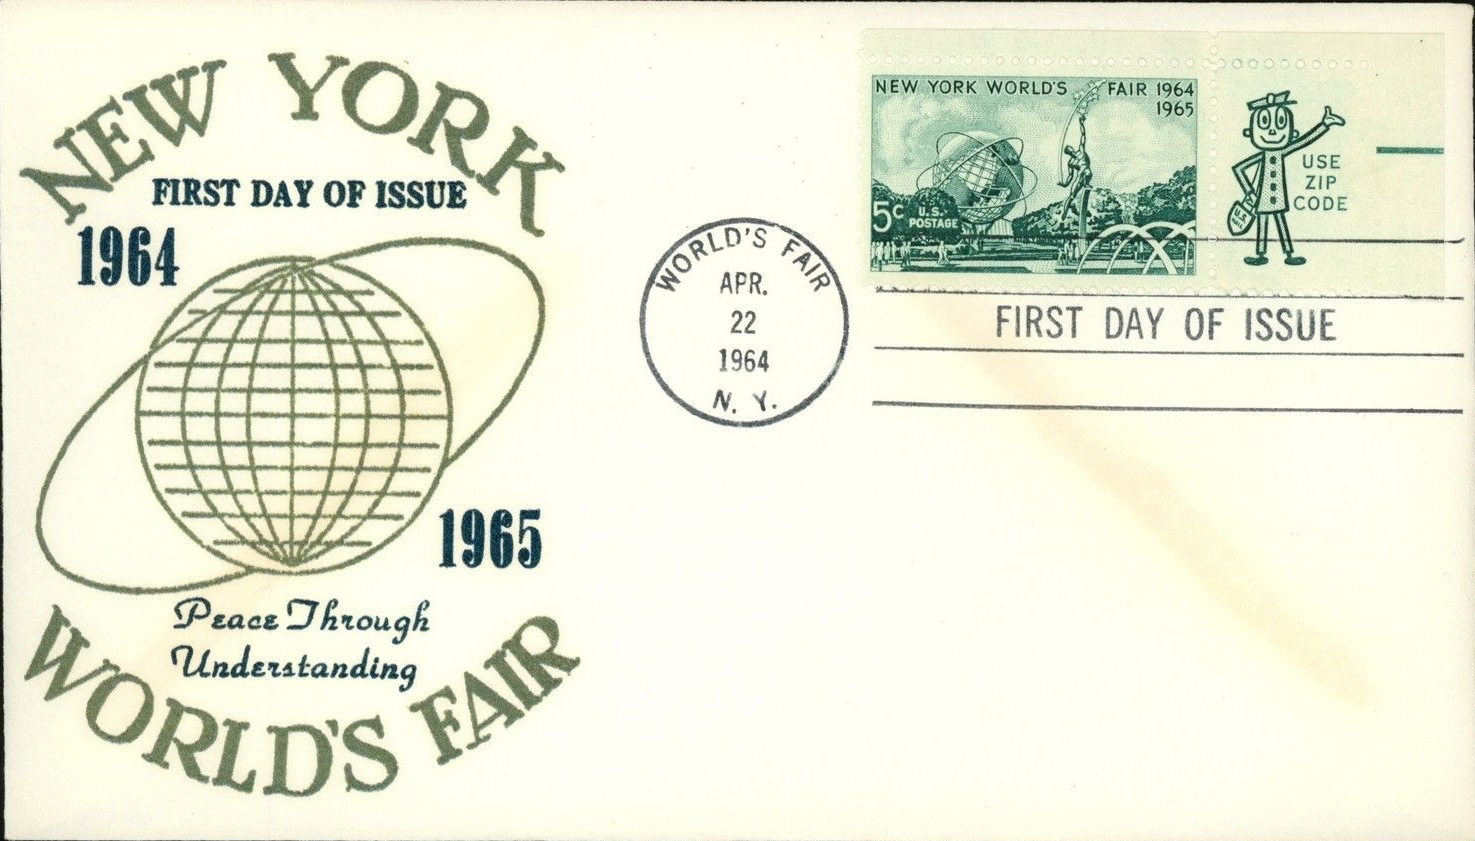 United States - Scott #1244 (1964) -first day cover; unknown cachet; Mr. Zip margin; handstamp cancellation